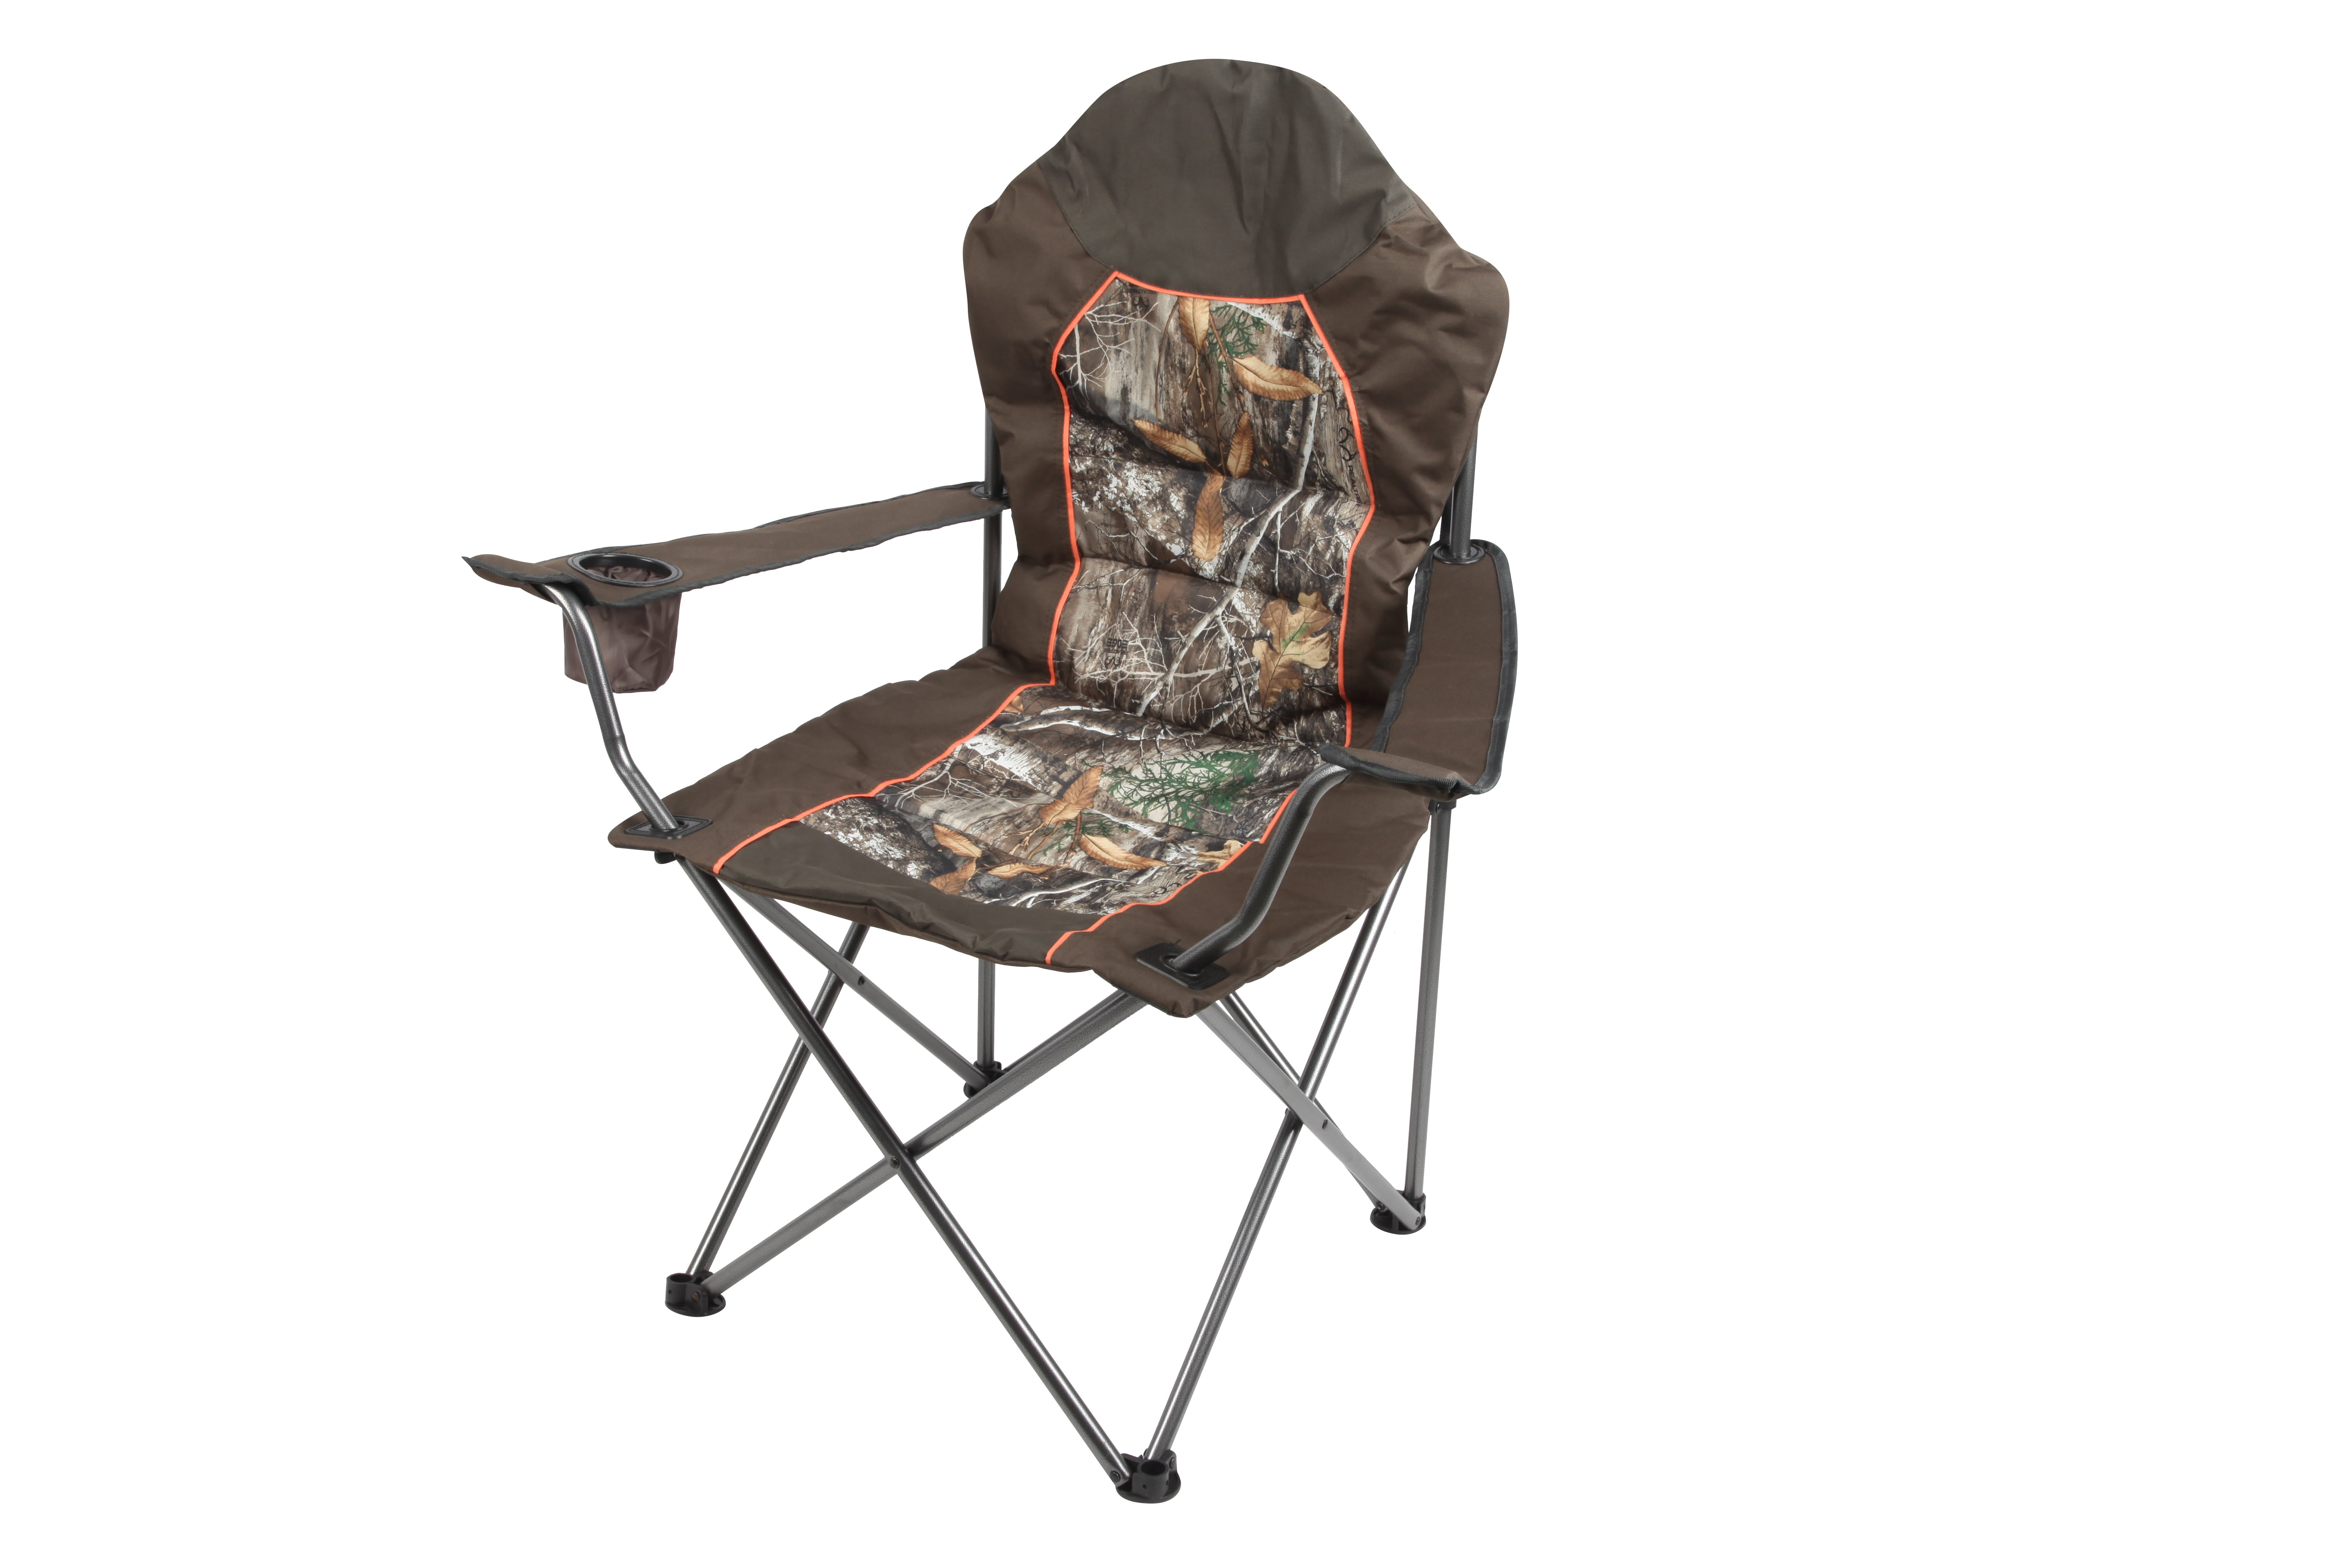 Brown Realtree Edge Padded Outfitter Chair with Insulated Cup Holder